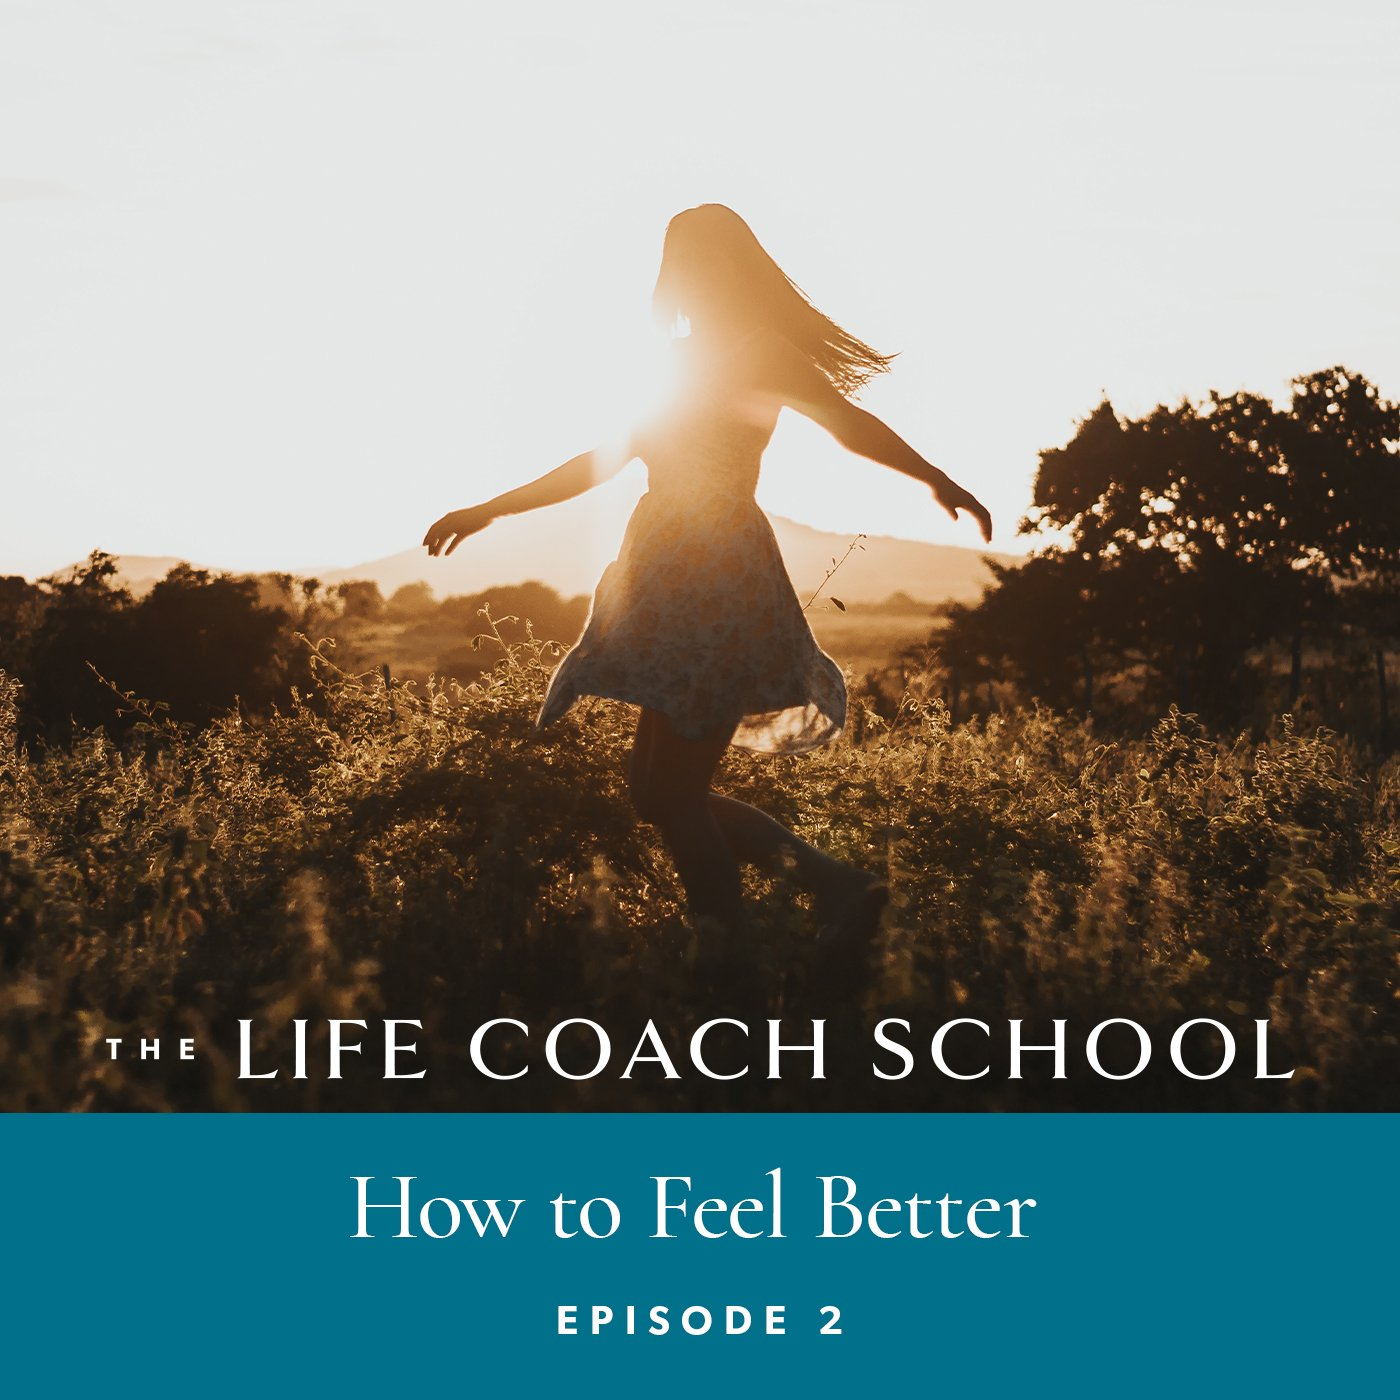 The Life Coach School Podcast with Brooke Castillo | Episode 2 | How To Feel Better